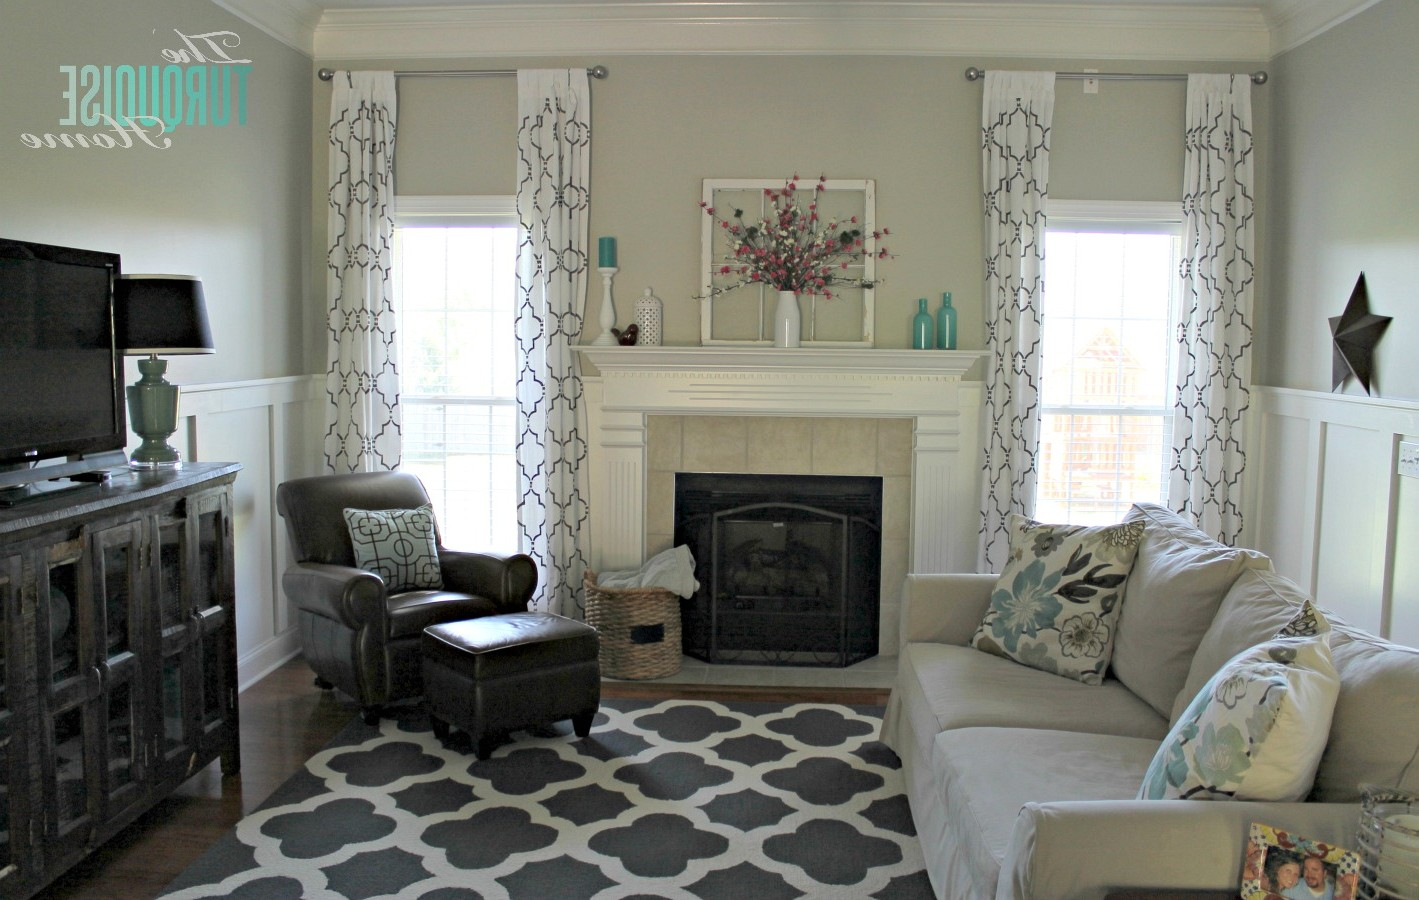 Rpblrtnr50 Ideas Here Remarkable Pottery Barn Living Room To Nest Room Collection 6075